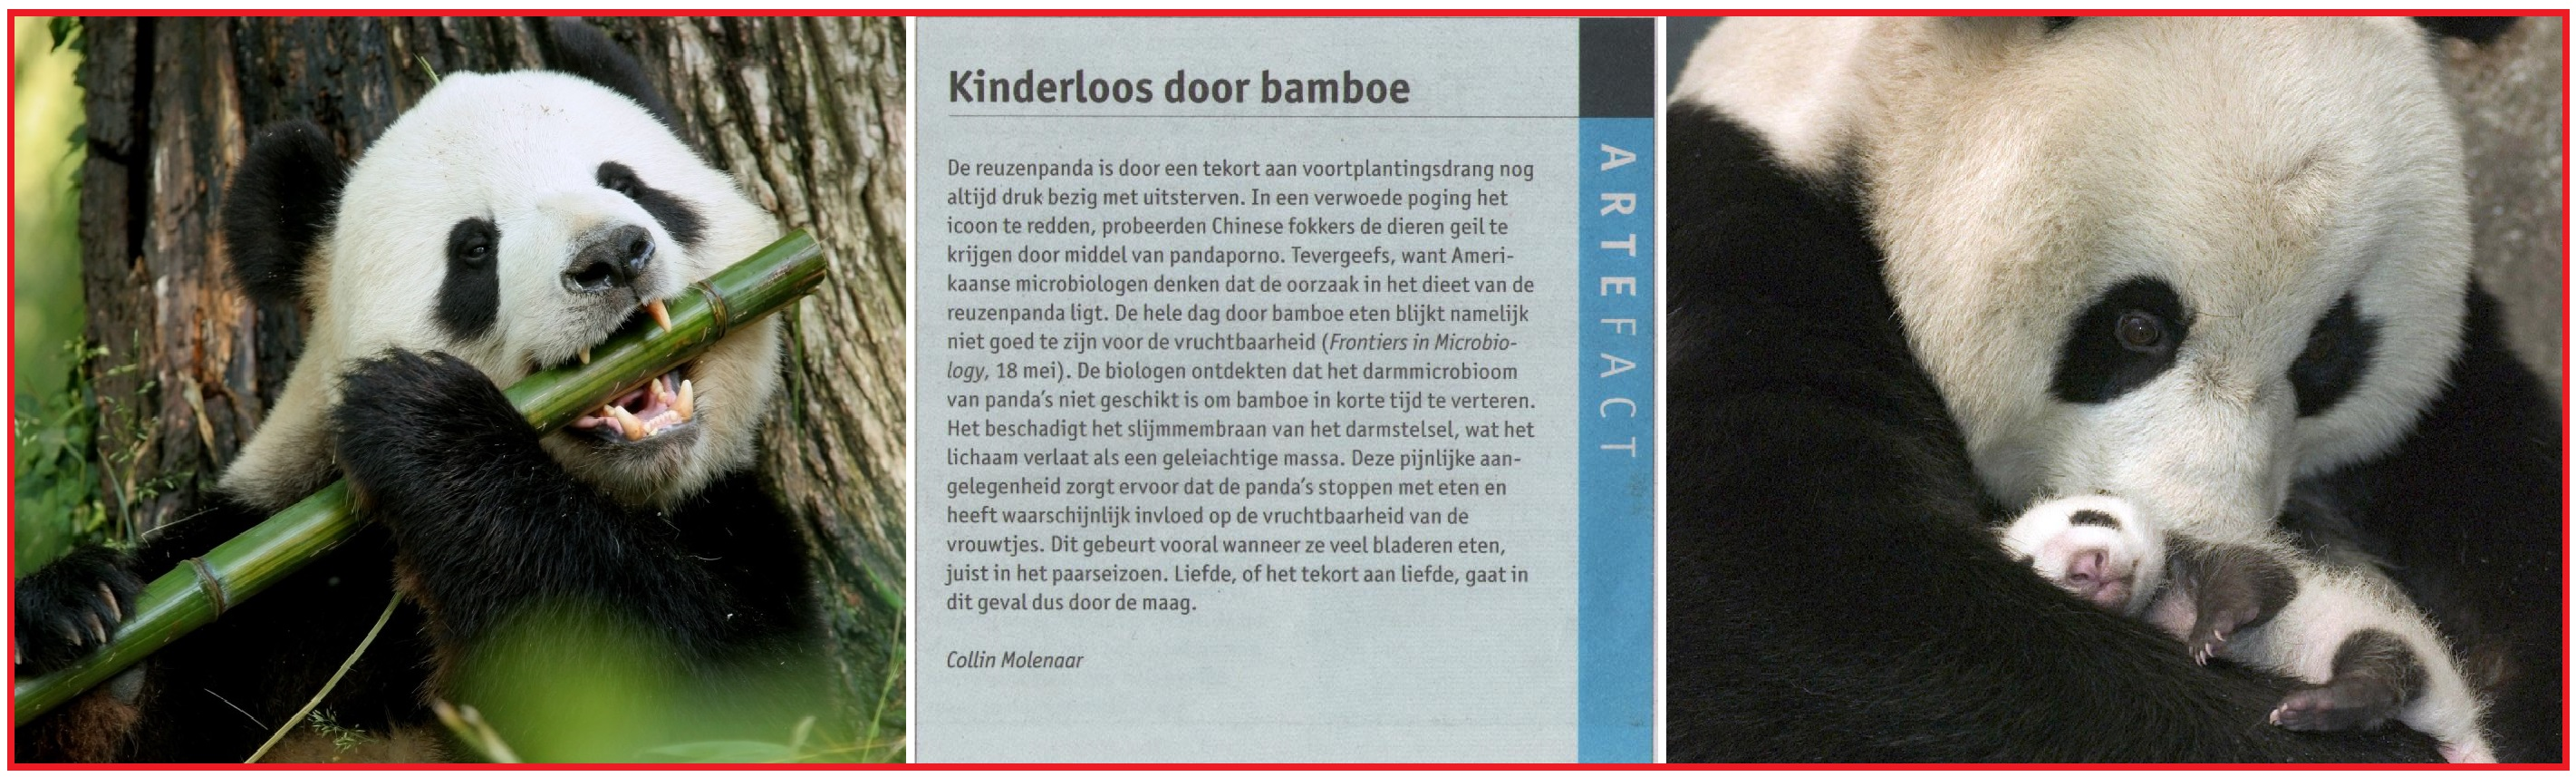 Kinderloosdoorbamboe